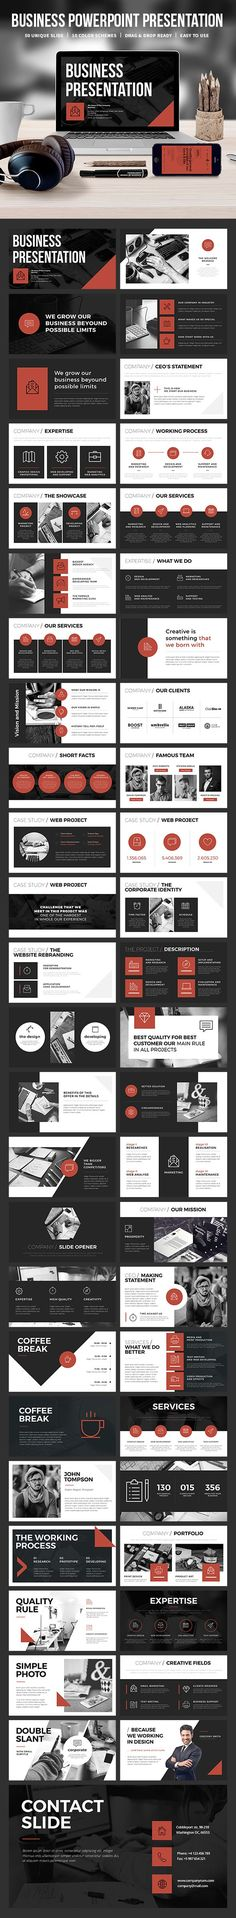 #Business #Powerpoint Template - Business PowerPoint #Templates Download here: https://graphicriver.net/item/business-powerpoint-template/19391681?ref=alena994 (Tech Design Resume Templates)